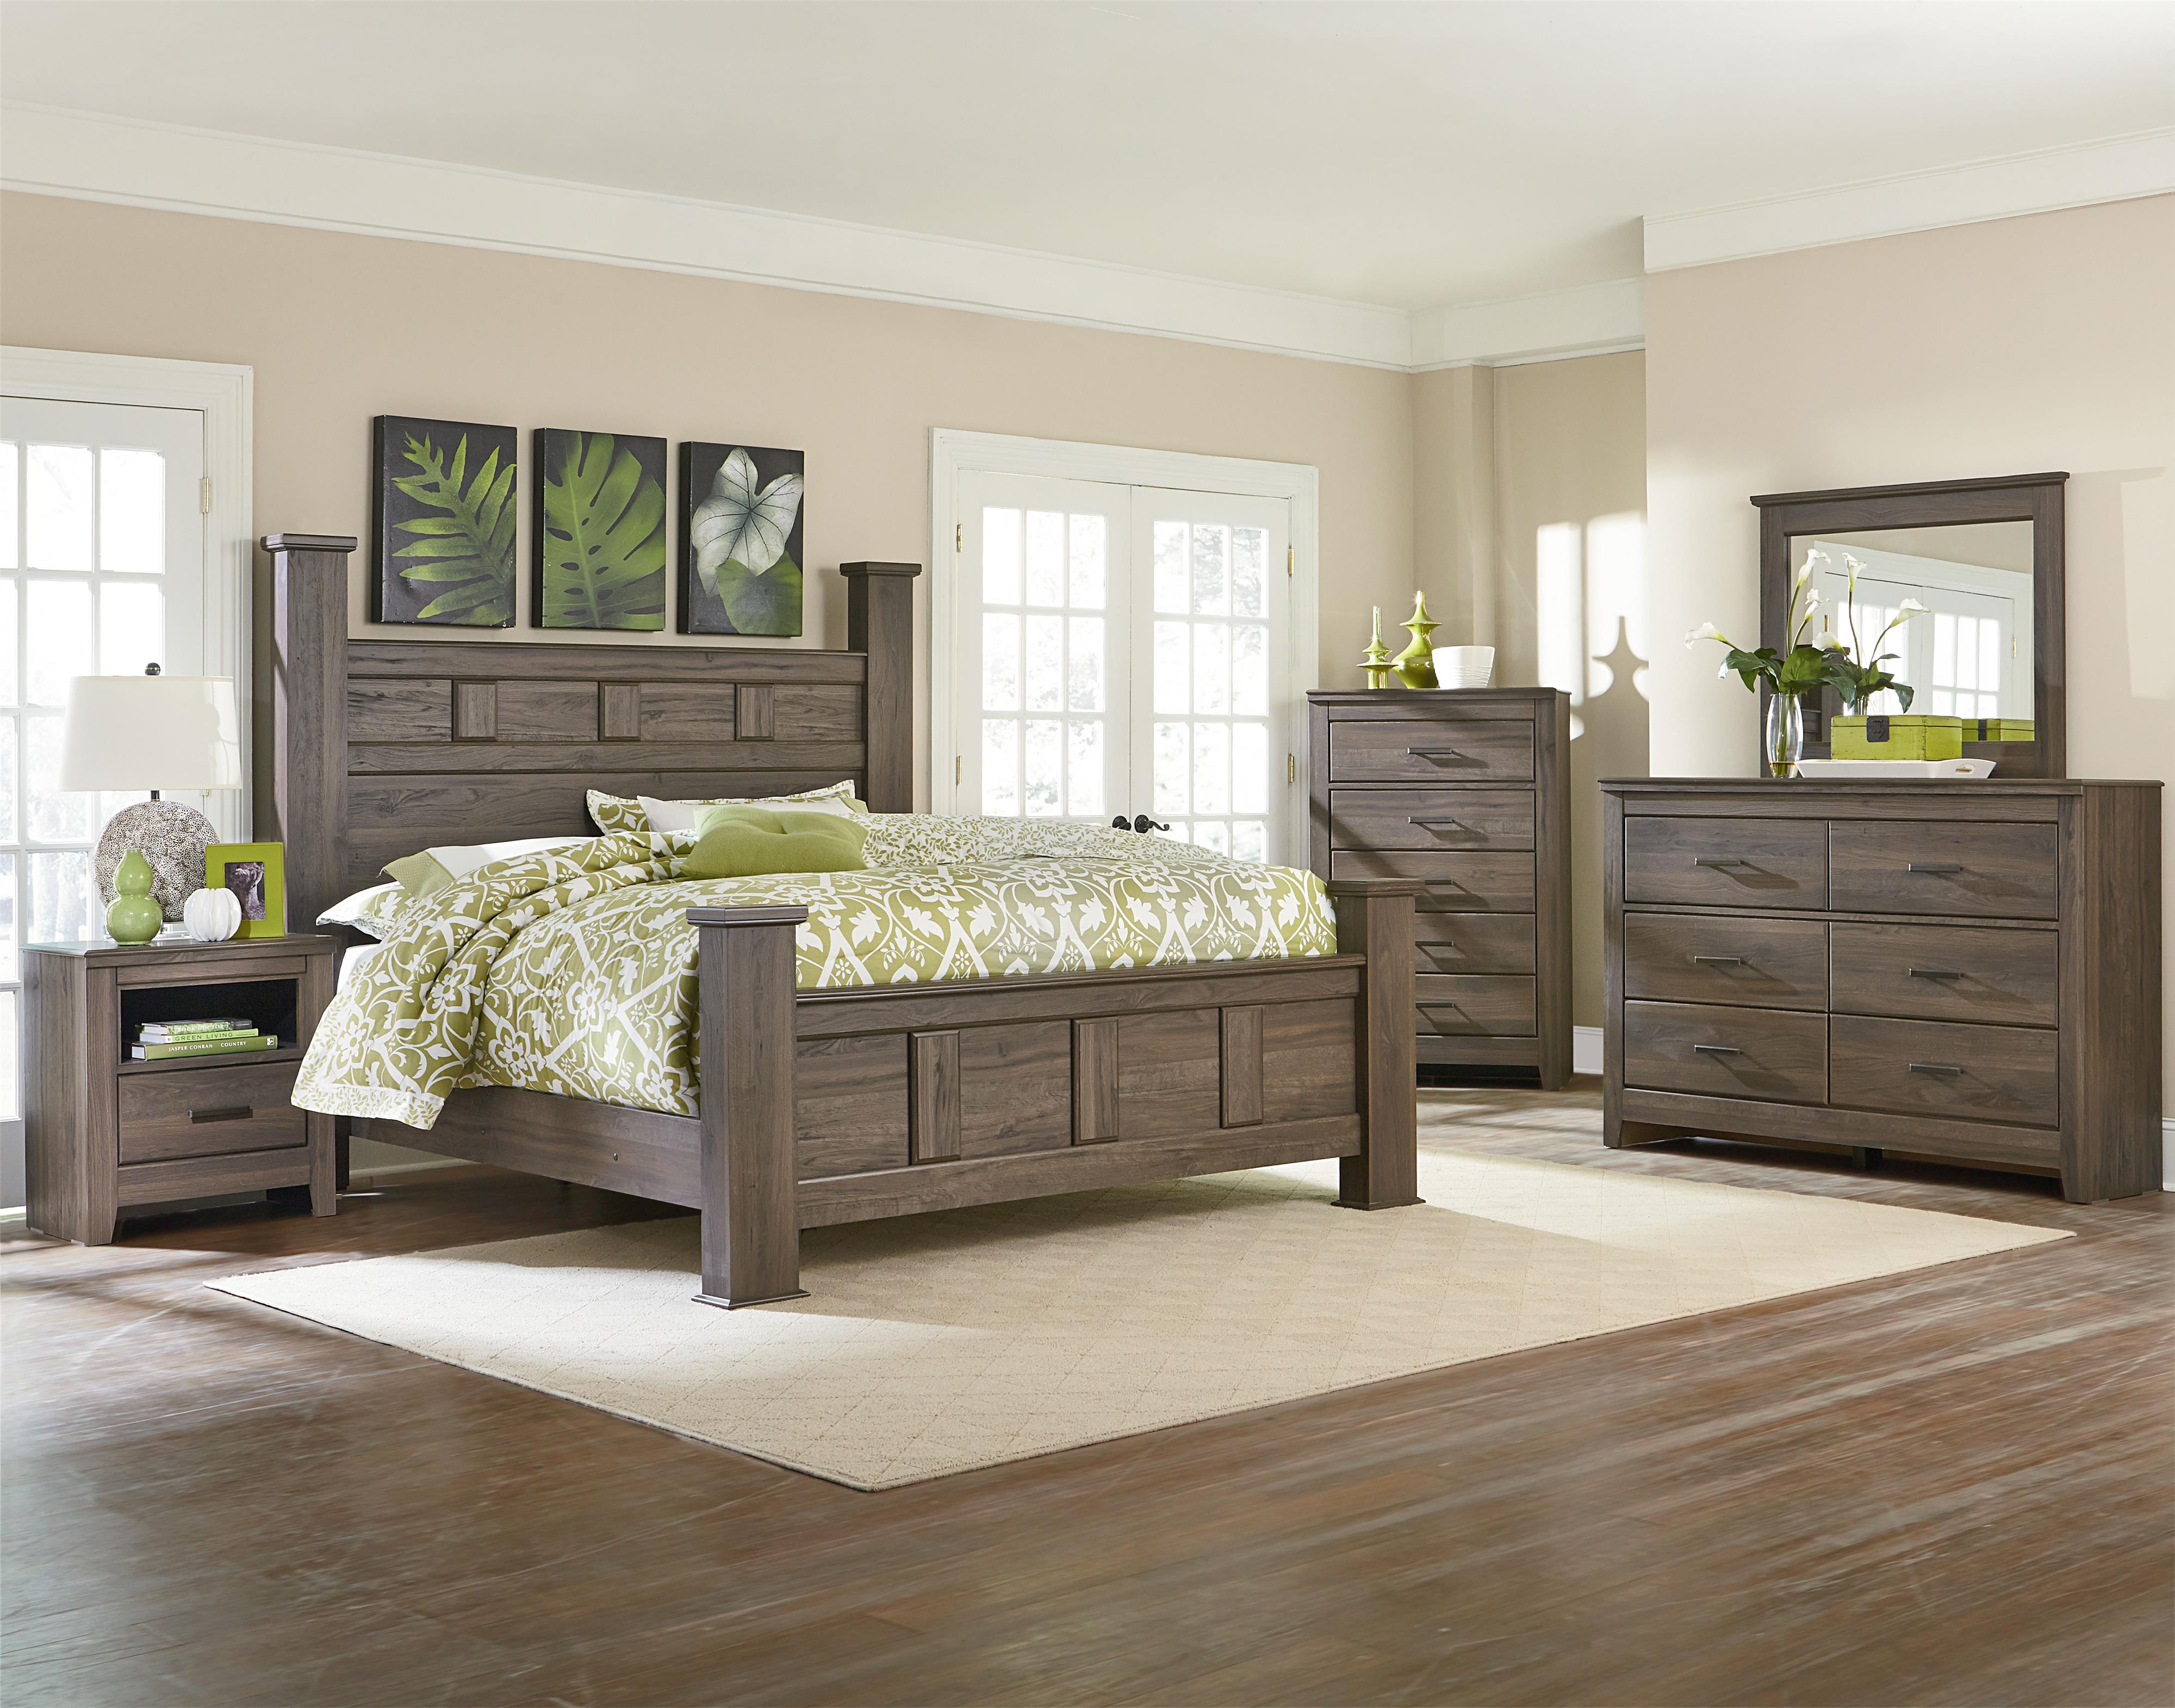 Standard Furniture Hayward Queen Bedroom Group Olinde 39 S Furniture Bedroom Group